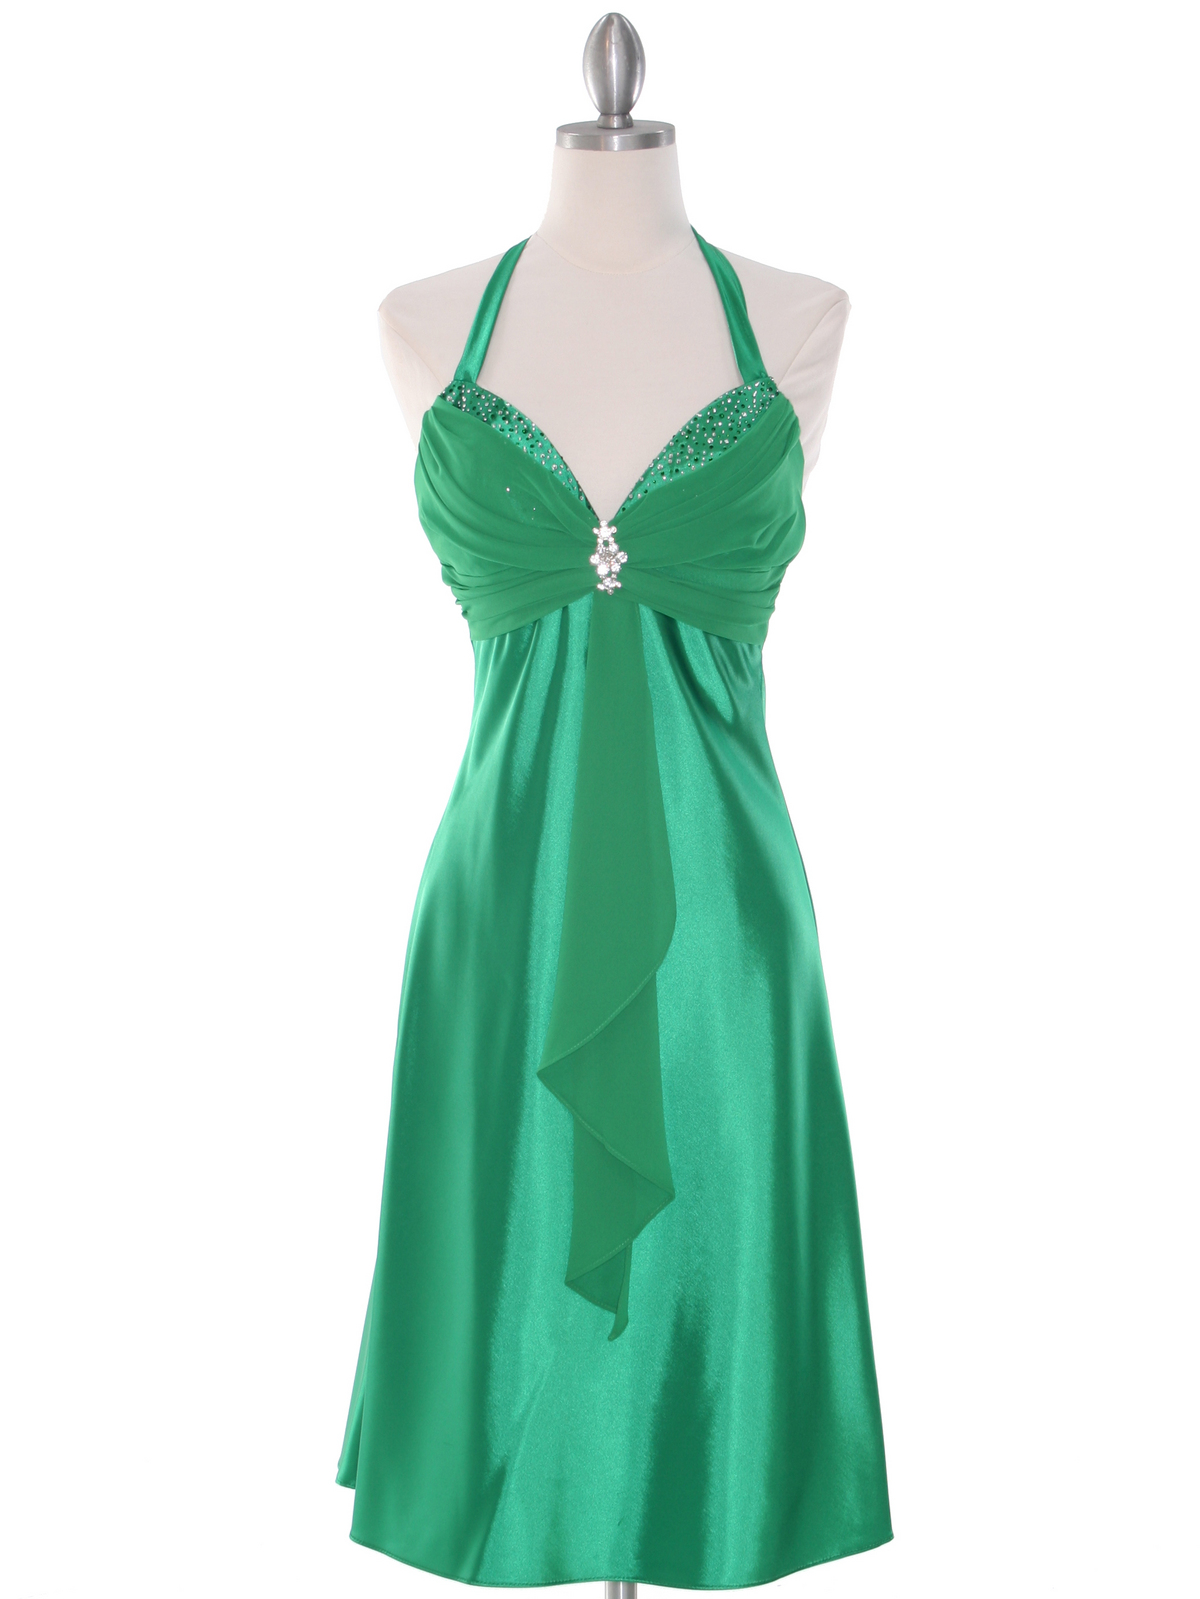 Green Halter Cocktail Dress with Rhinestone Pin | Sung